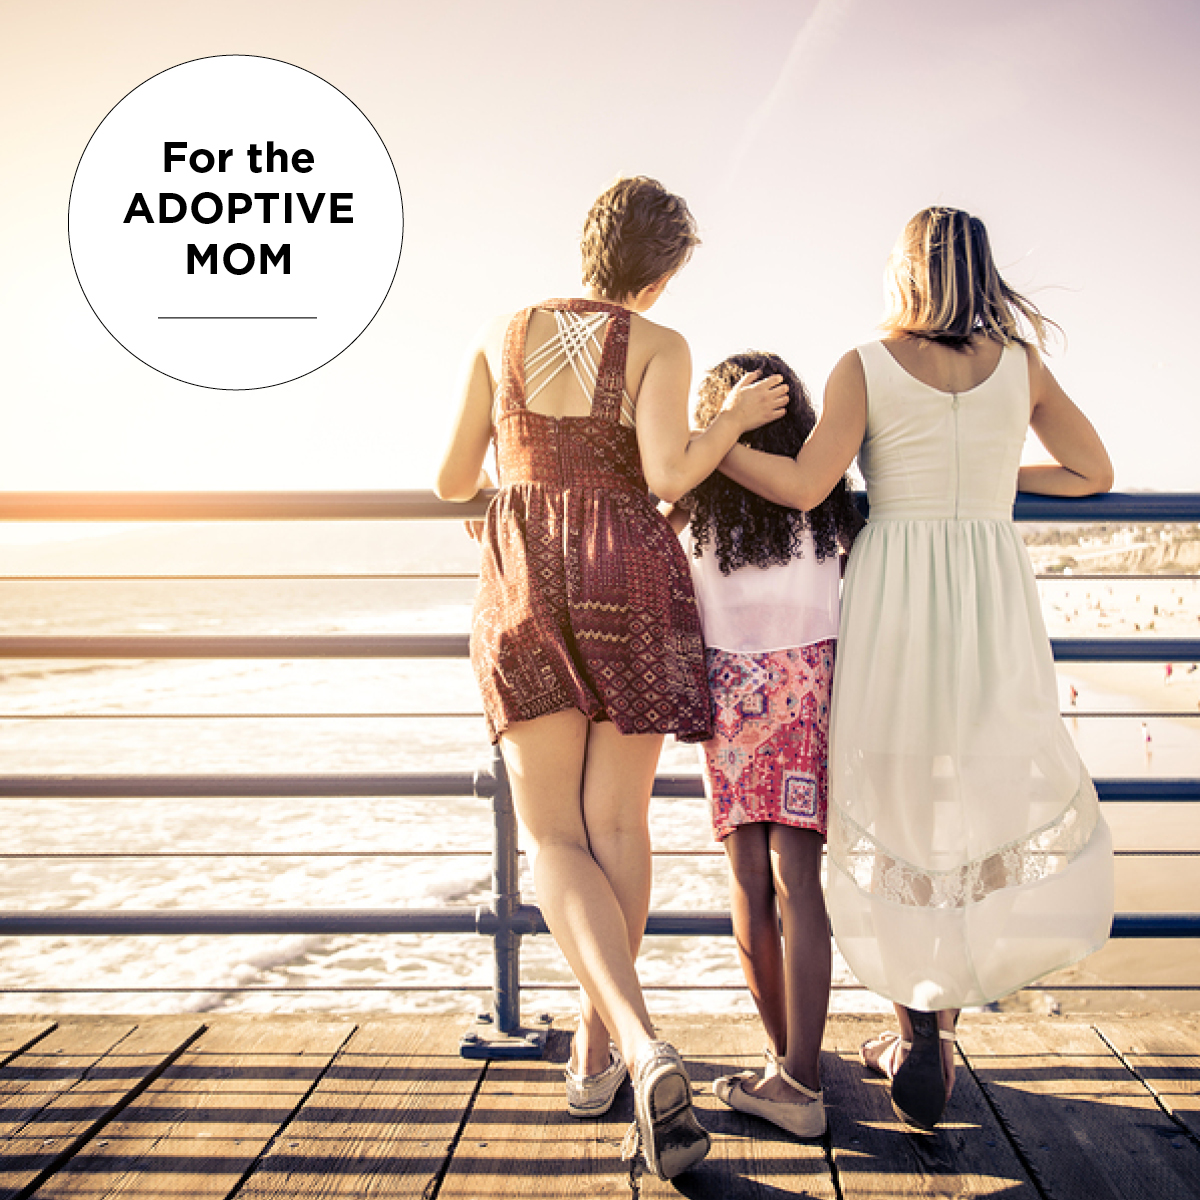 preserving adoption story in a legacy book is most unique mothers day gift for adoptive mothers